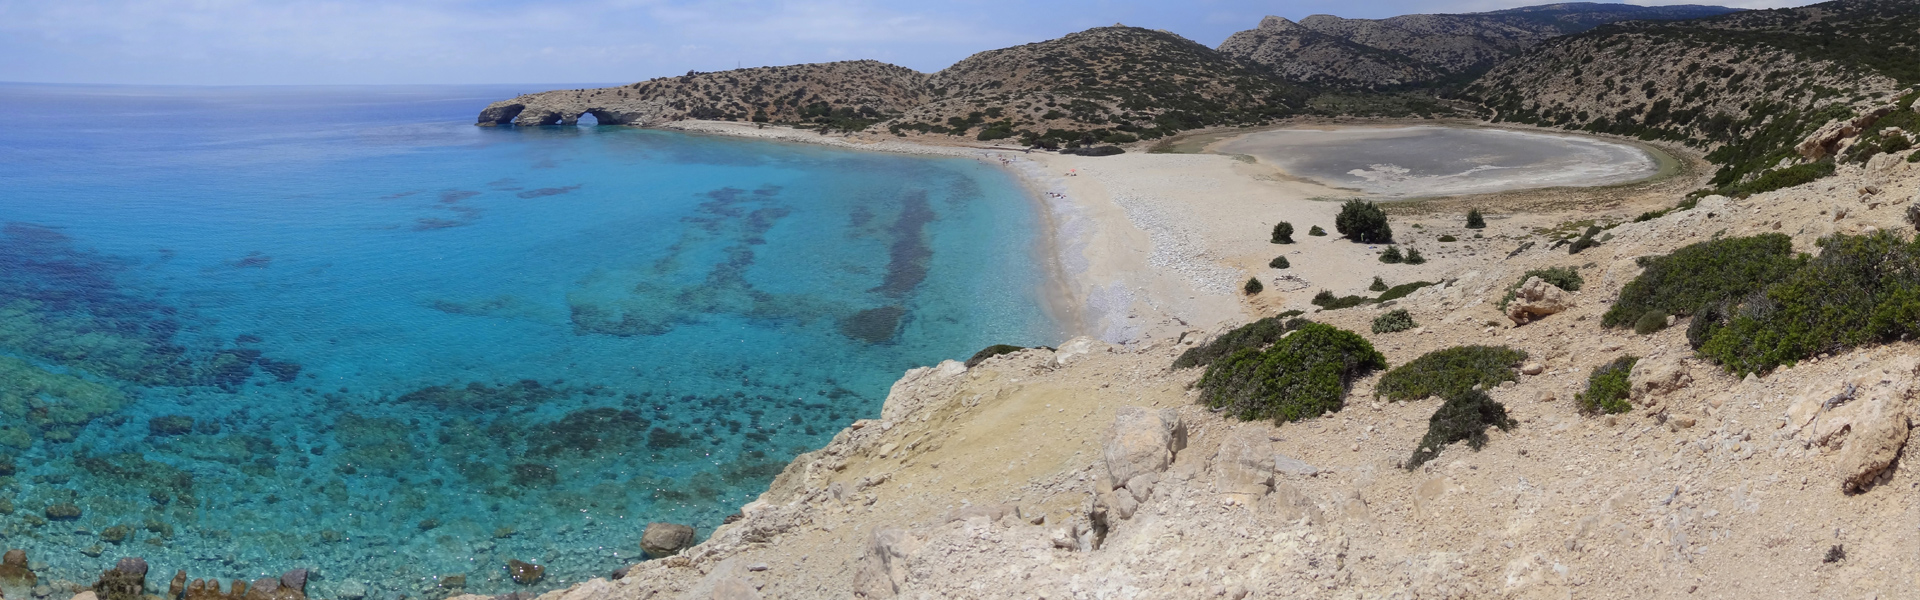 Tripiti: The southernmost tip of Europe